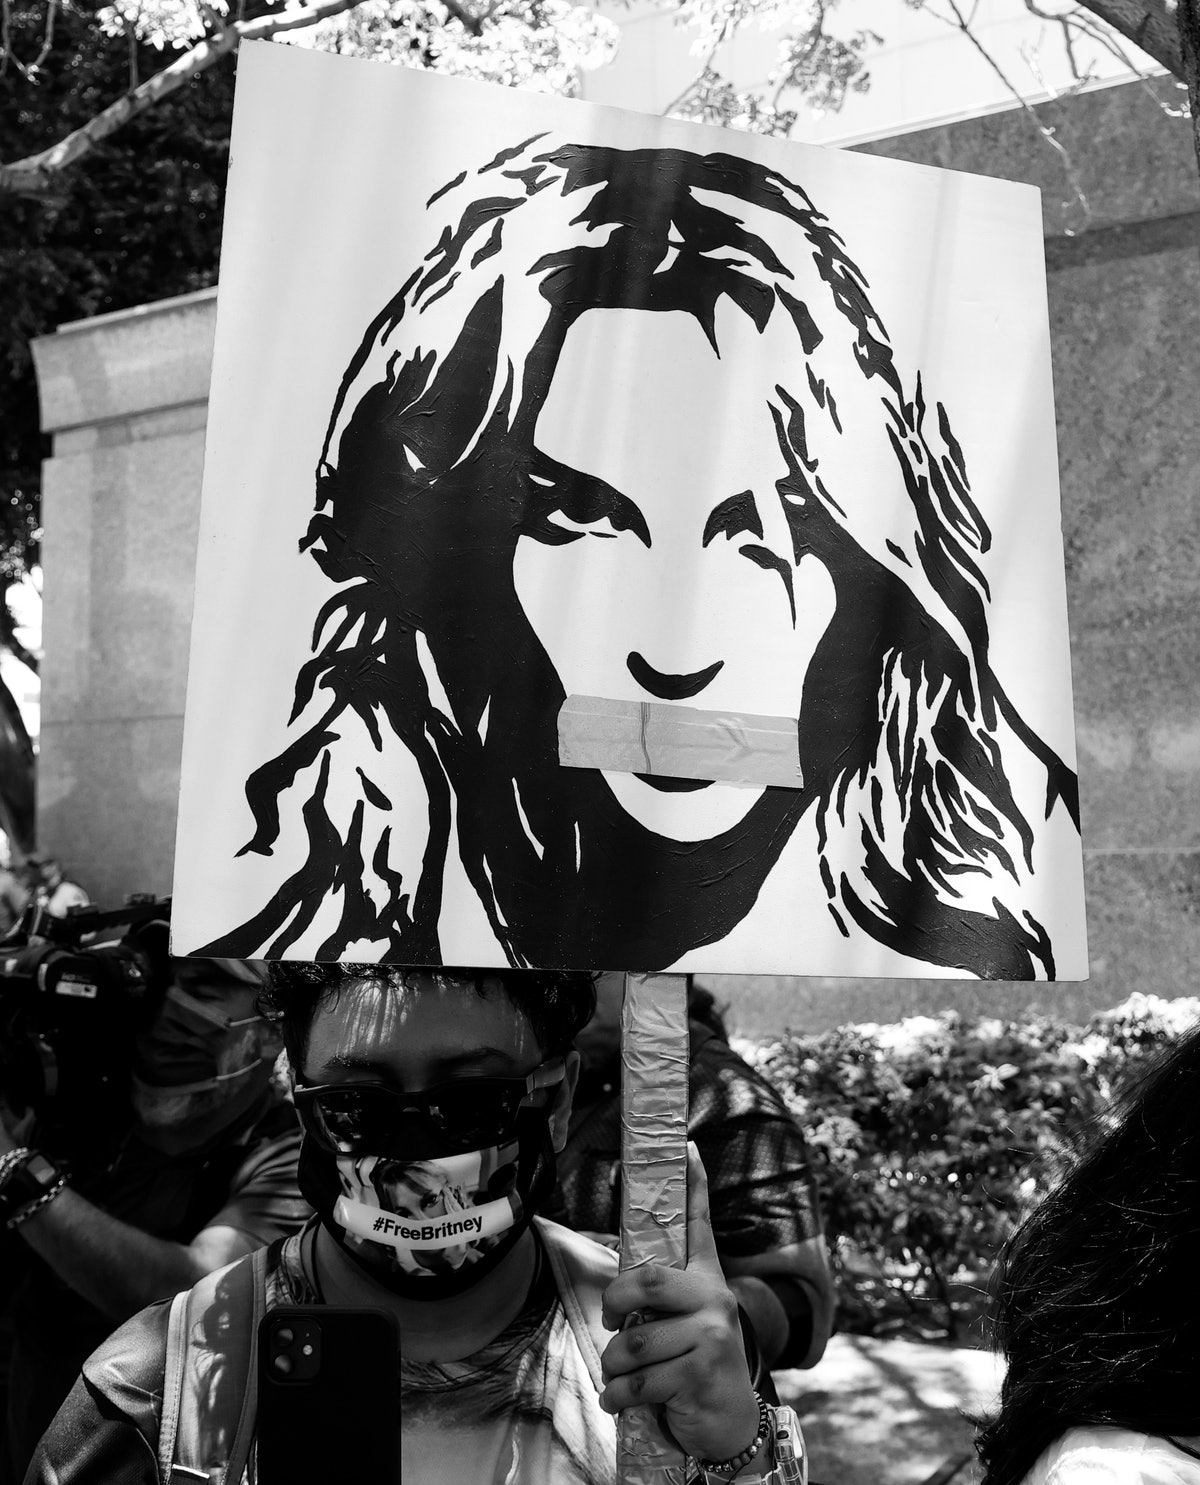 #FreeBritney activists protest at Los Angeles Grand Park during a conservatorship hearing for Britne...